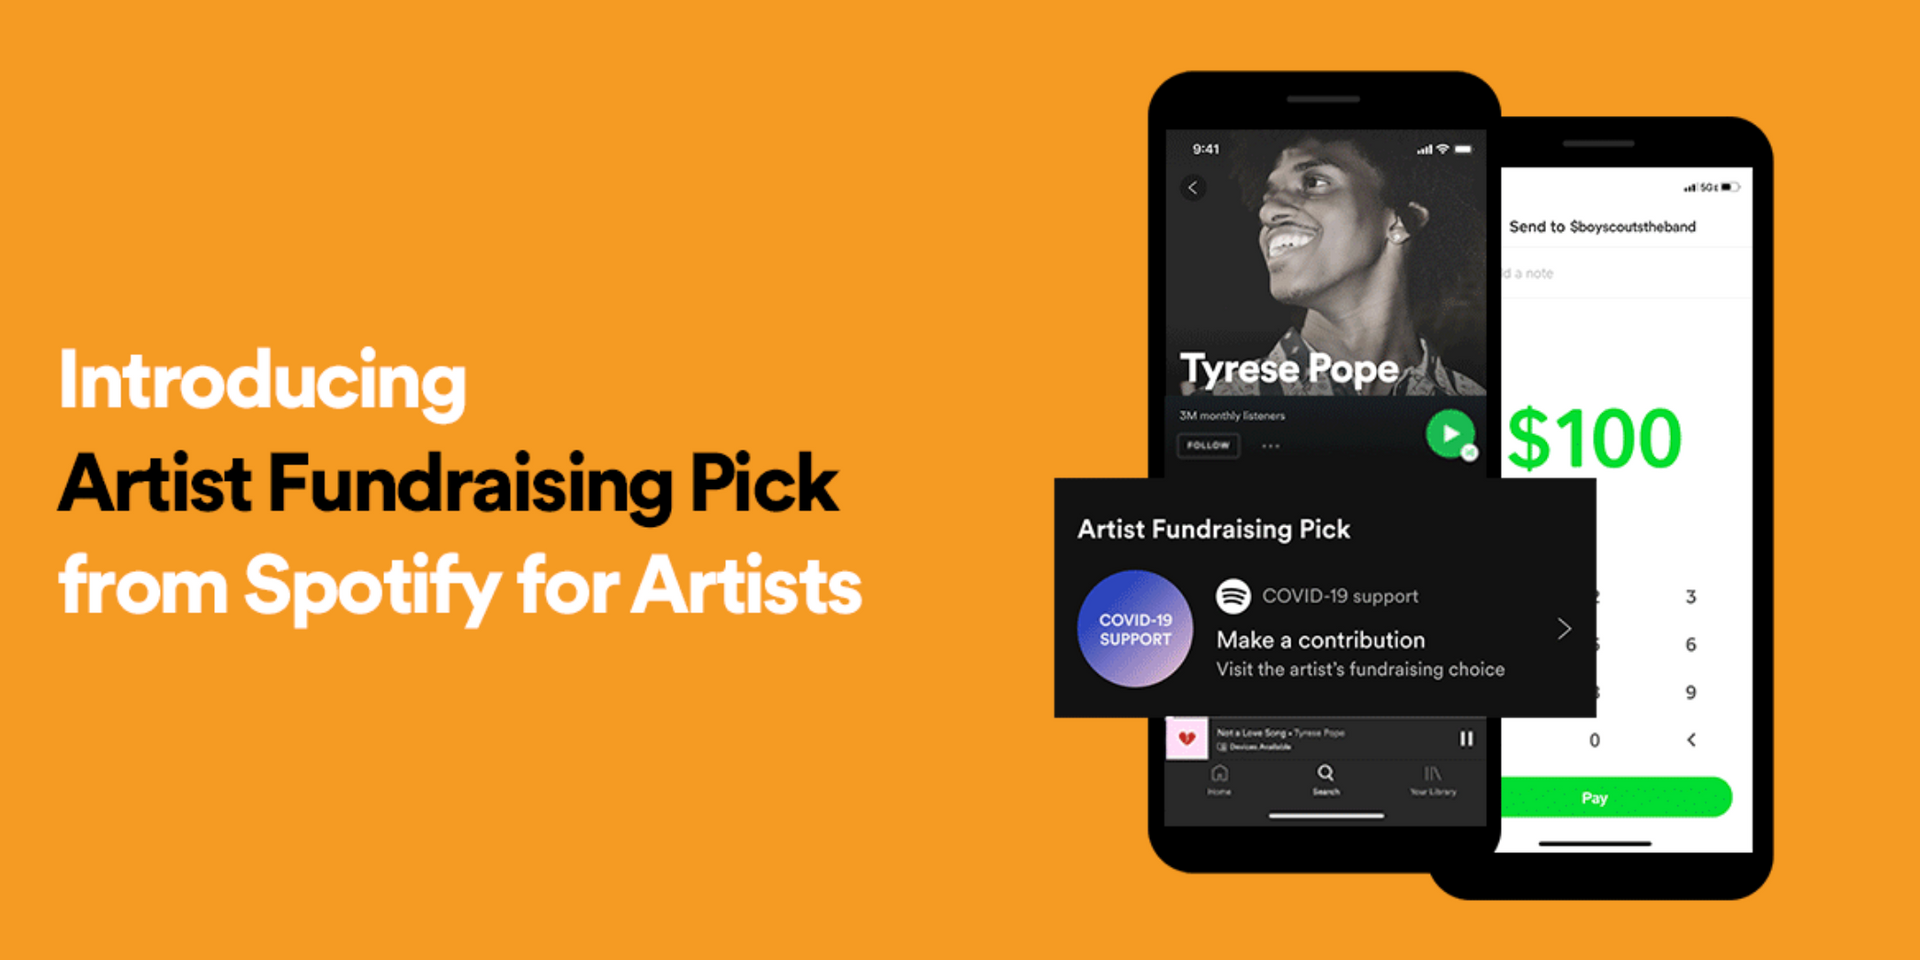 Artists can now fundraise directly from fans with Spotify's new feature, Artist Fundraising Pick